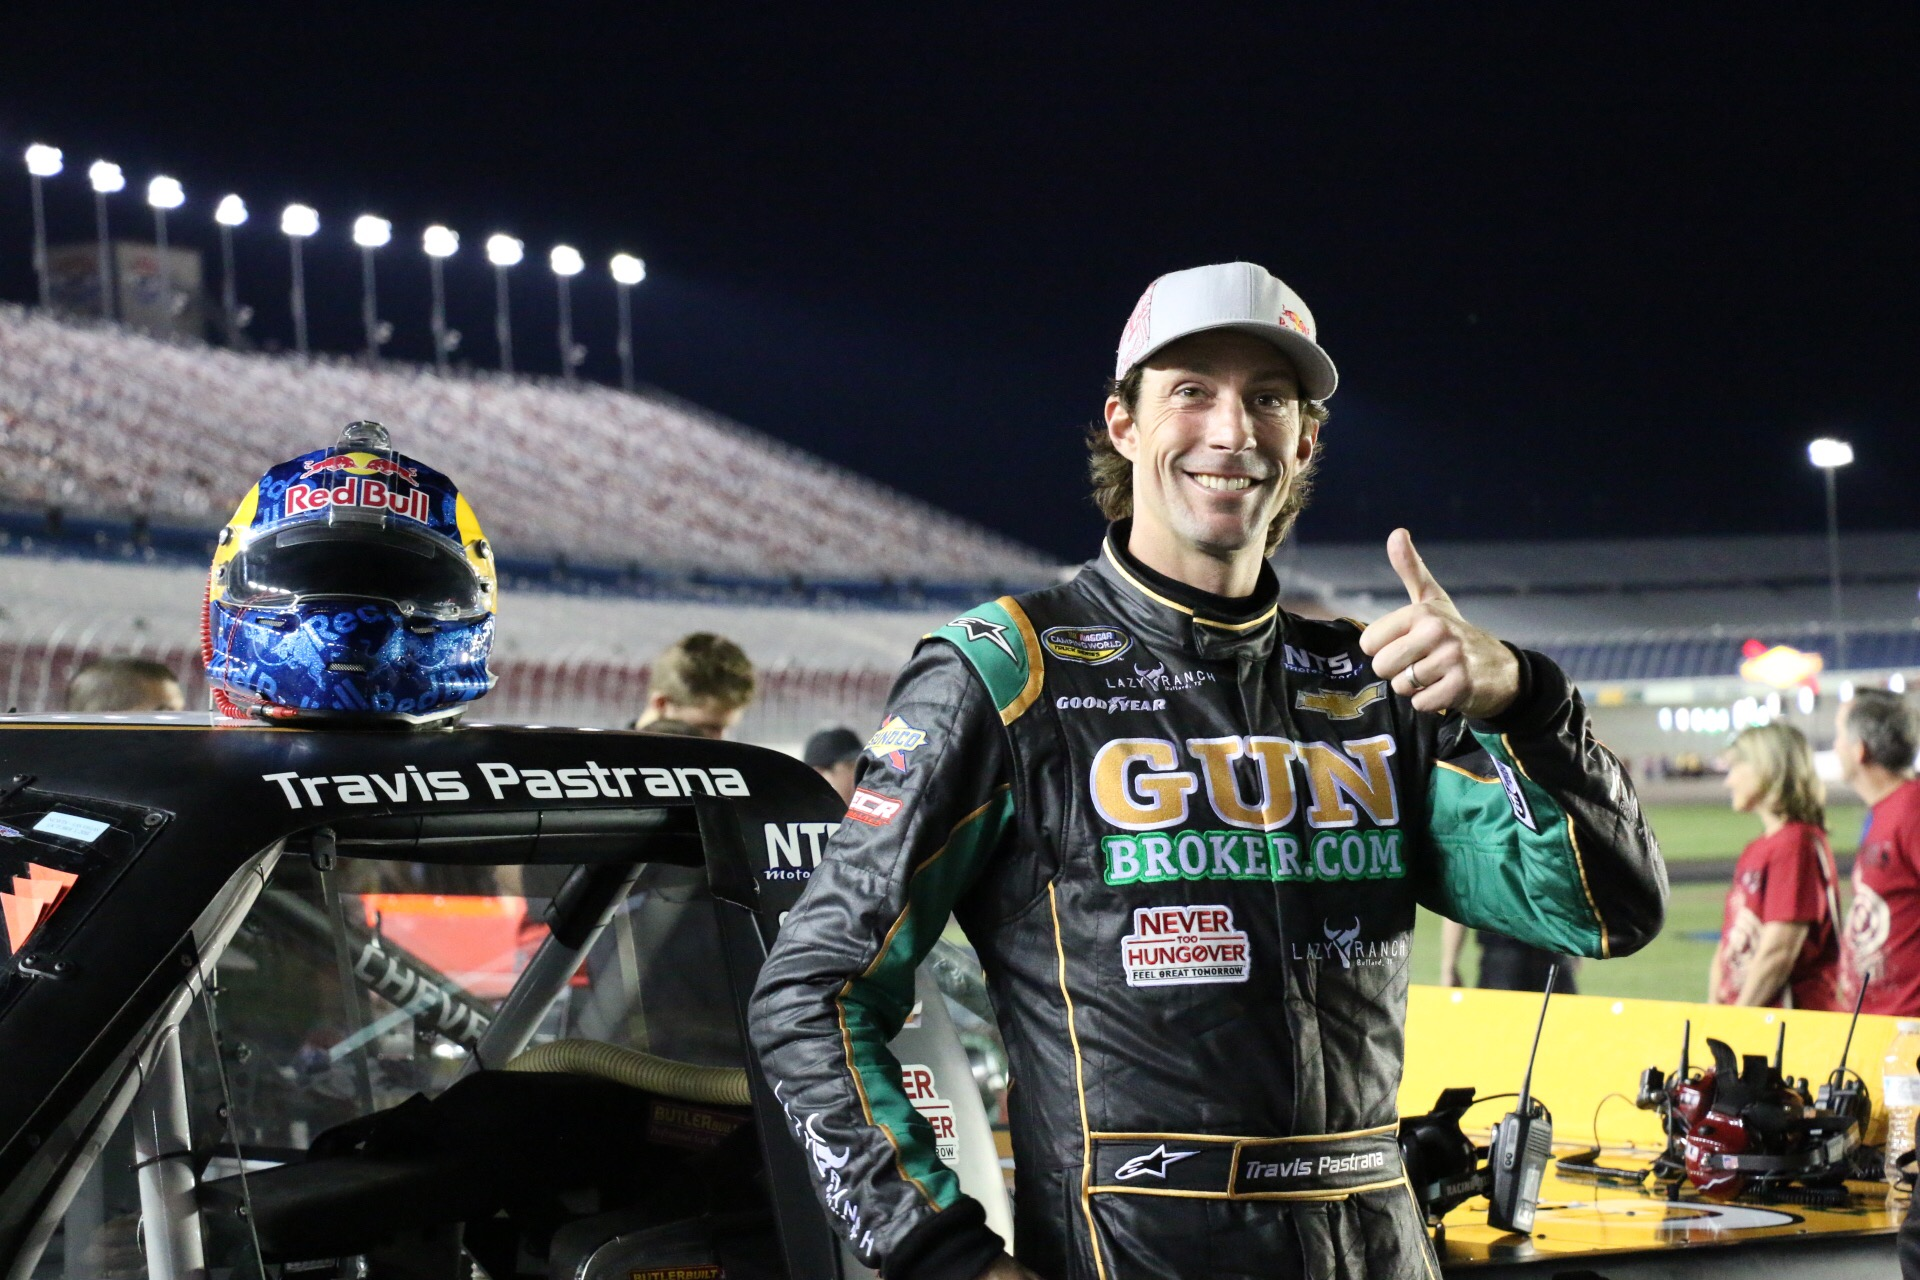 The 34-year old son of father Robert Pastrana and mother Debby Pastrana Travis Pastrana in 2018 photo. Travis Pastrana earned a  million dollar salary - leaving the net worth at 24 million in 2018